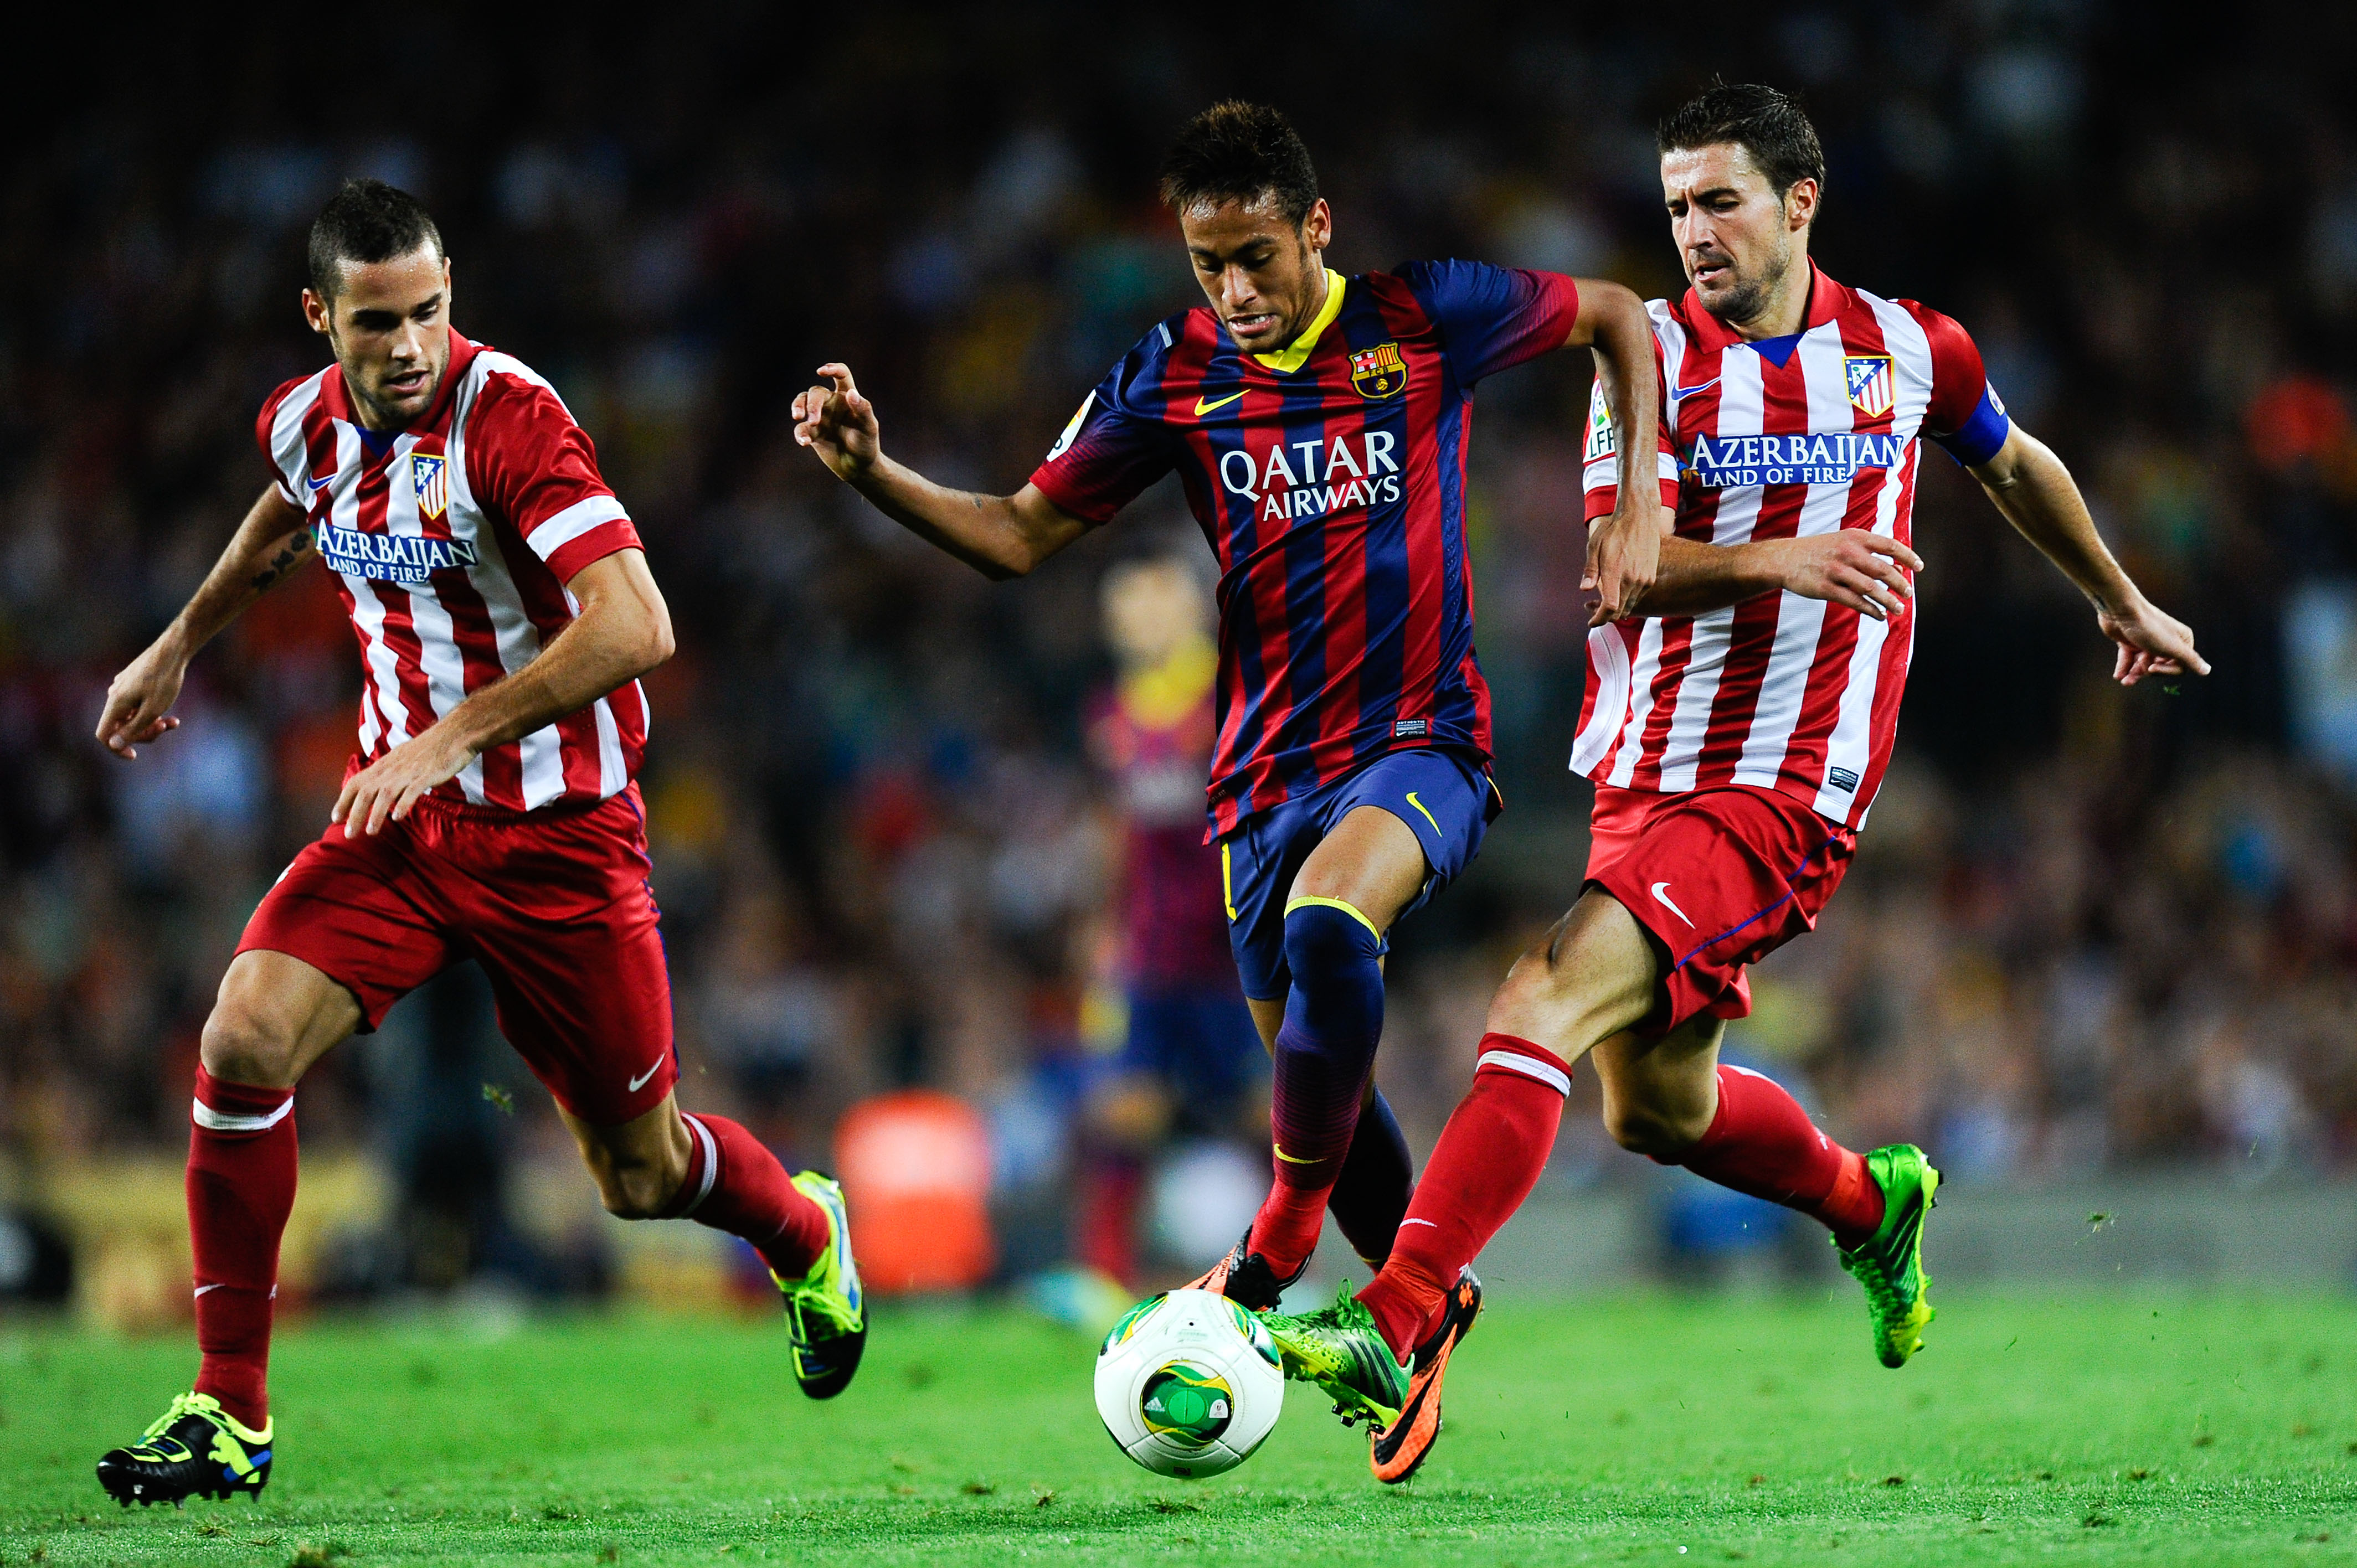 Atl. Madrid – Barcelona Prediction & Preview and Betting Tips (14.10.2017)